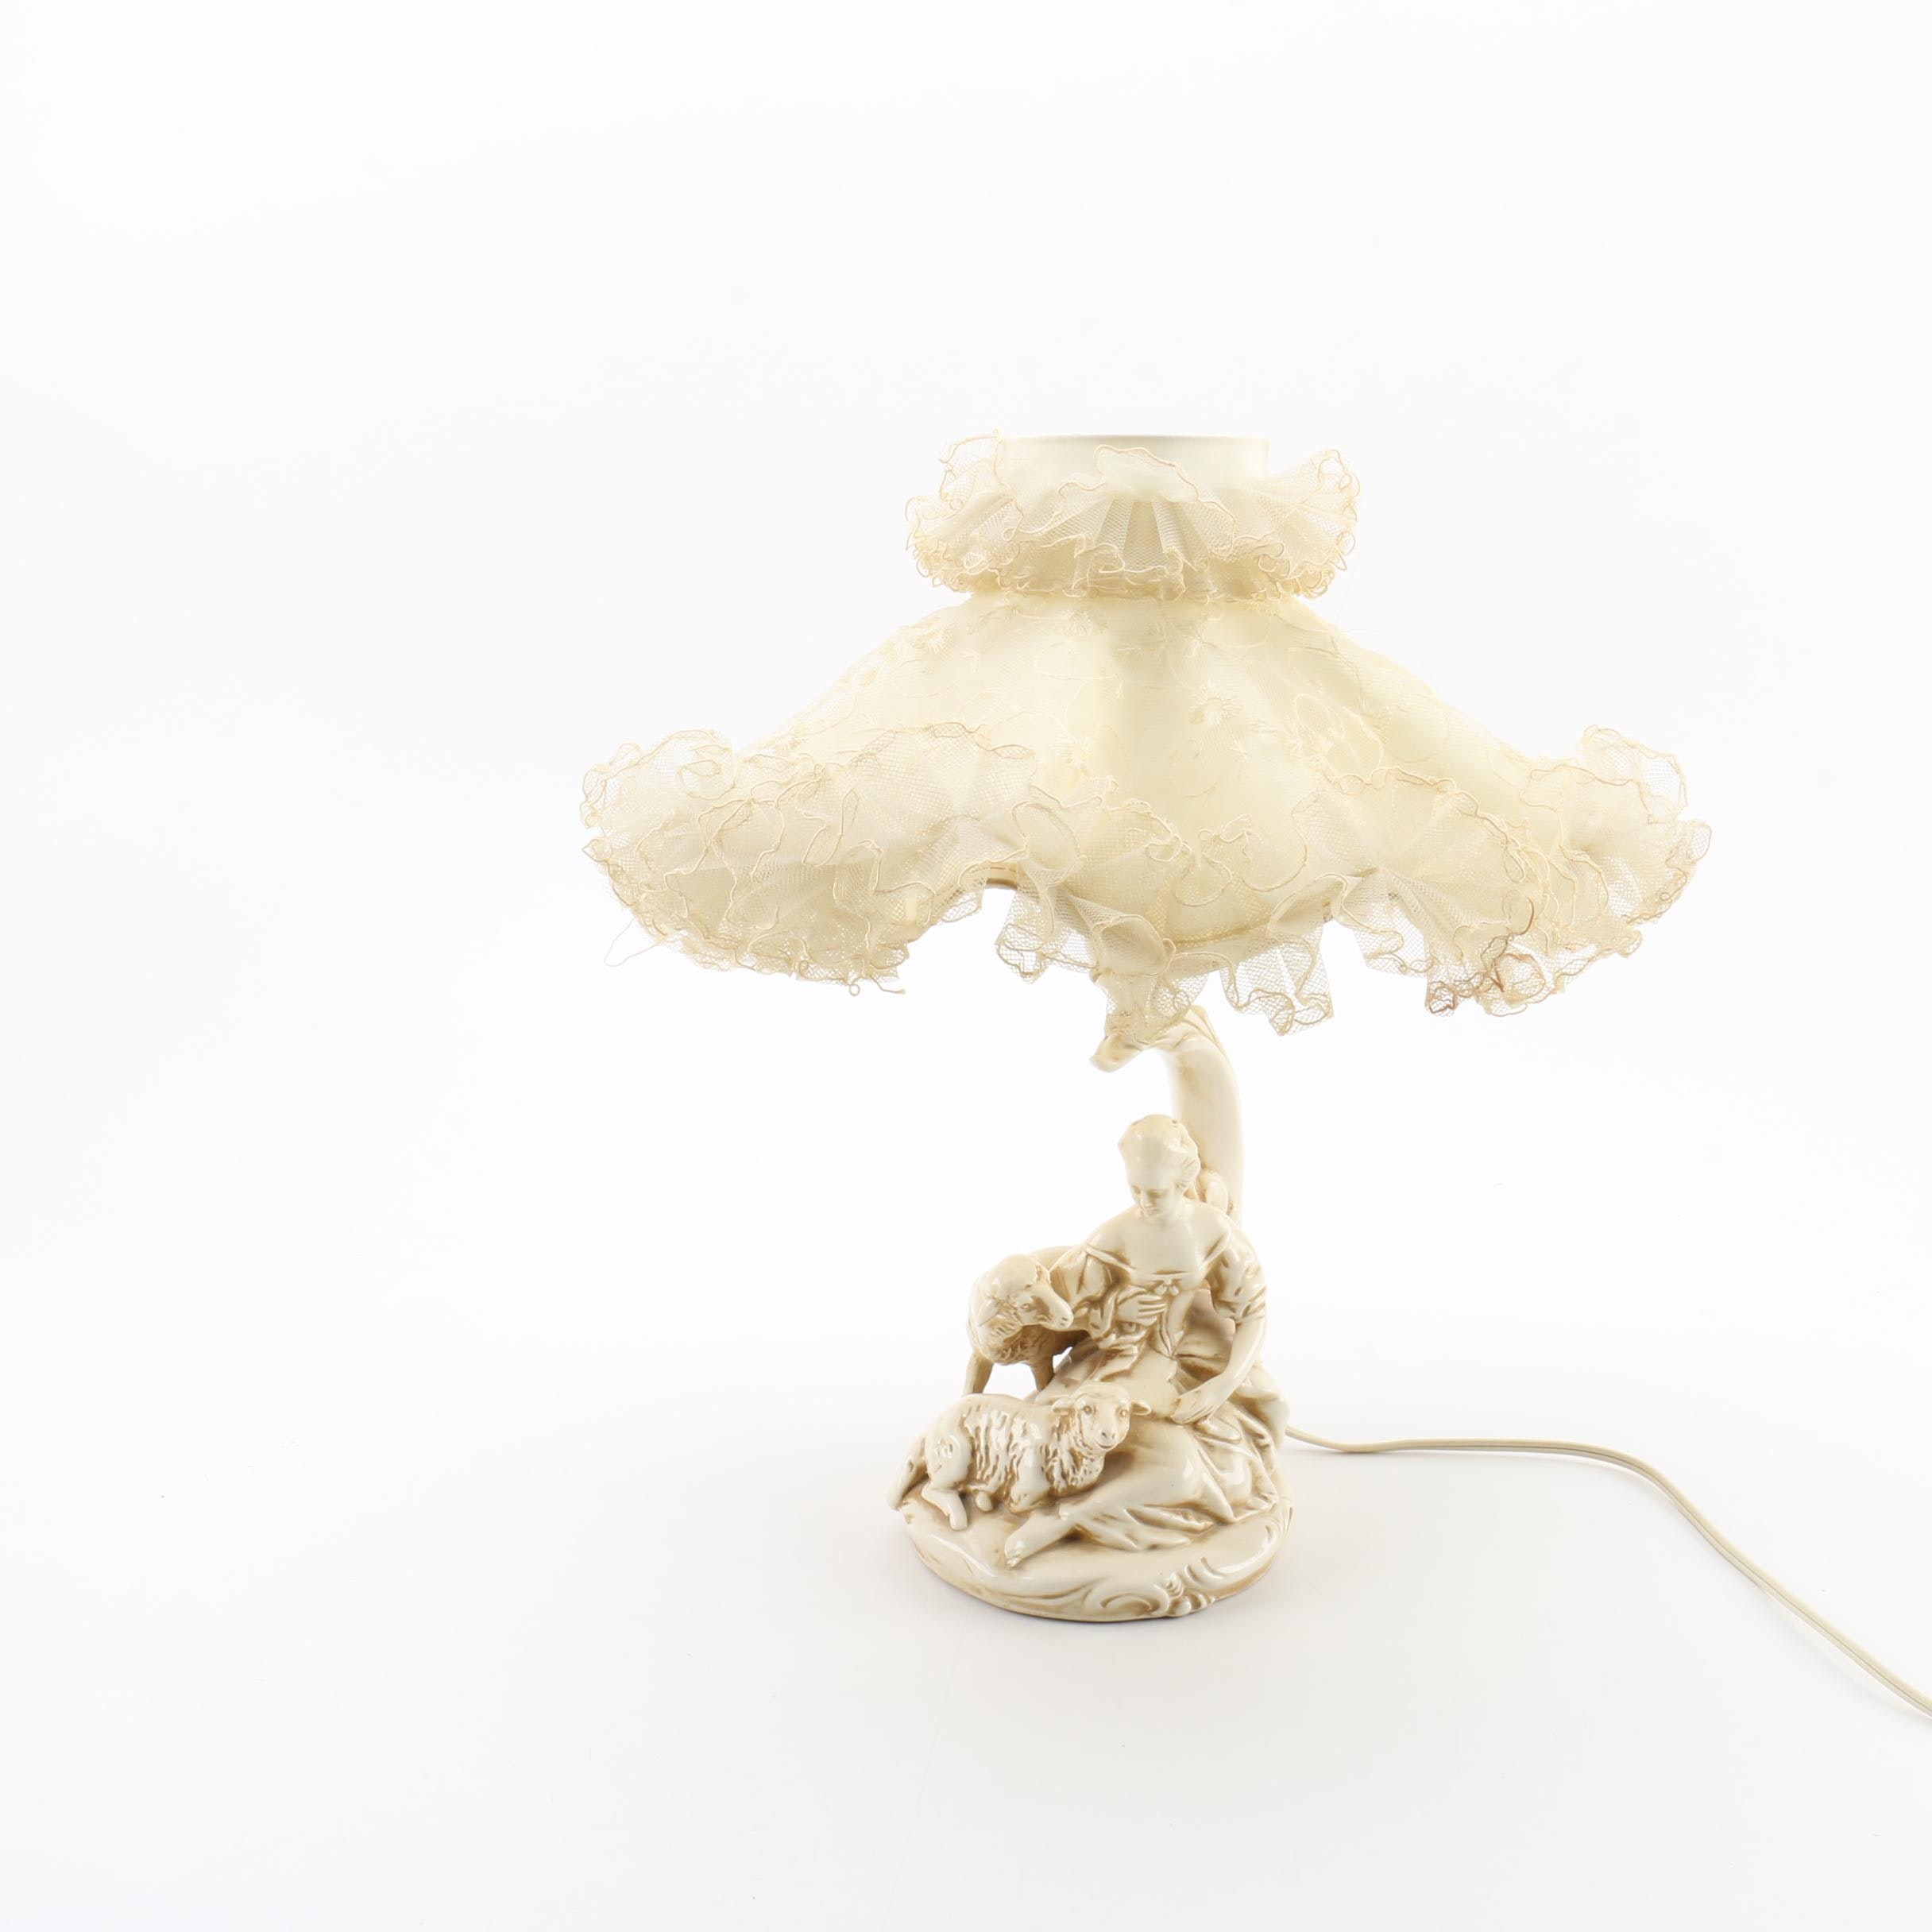 Vintage Figurine Table Lamp Including Ruffled Lace Shade